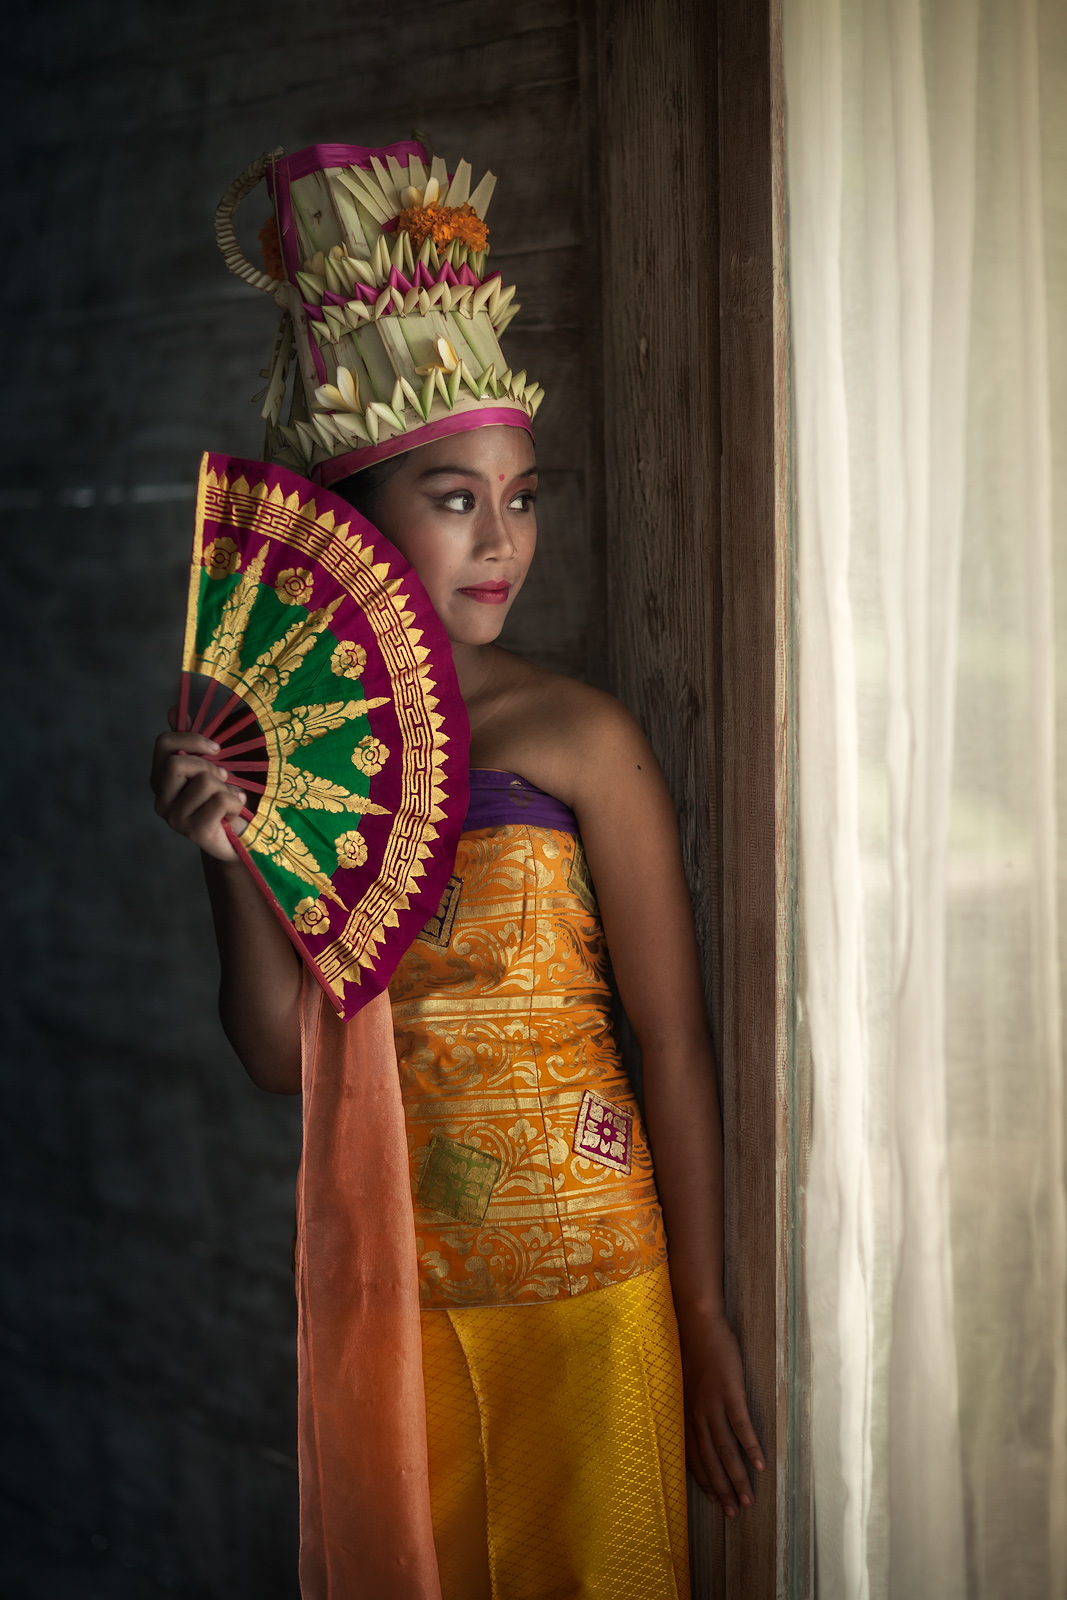 asia,asian,bali,costume,dance,east java,female,girl,indonesia,indonesian,java,legong,preparation,traditional,ubud,young, photo